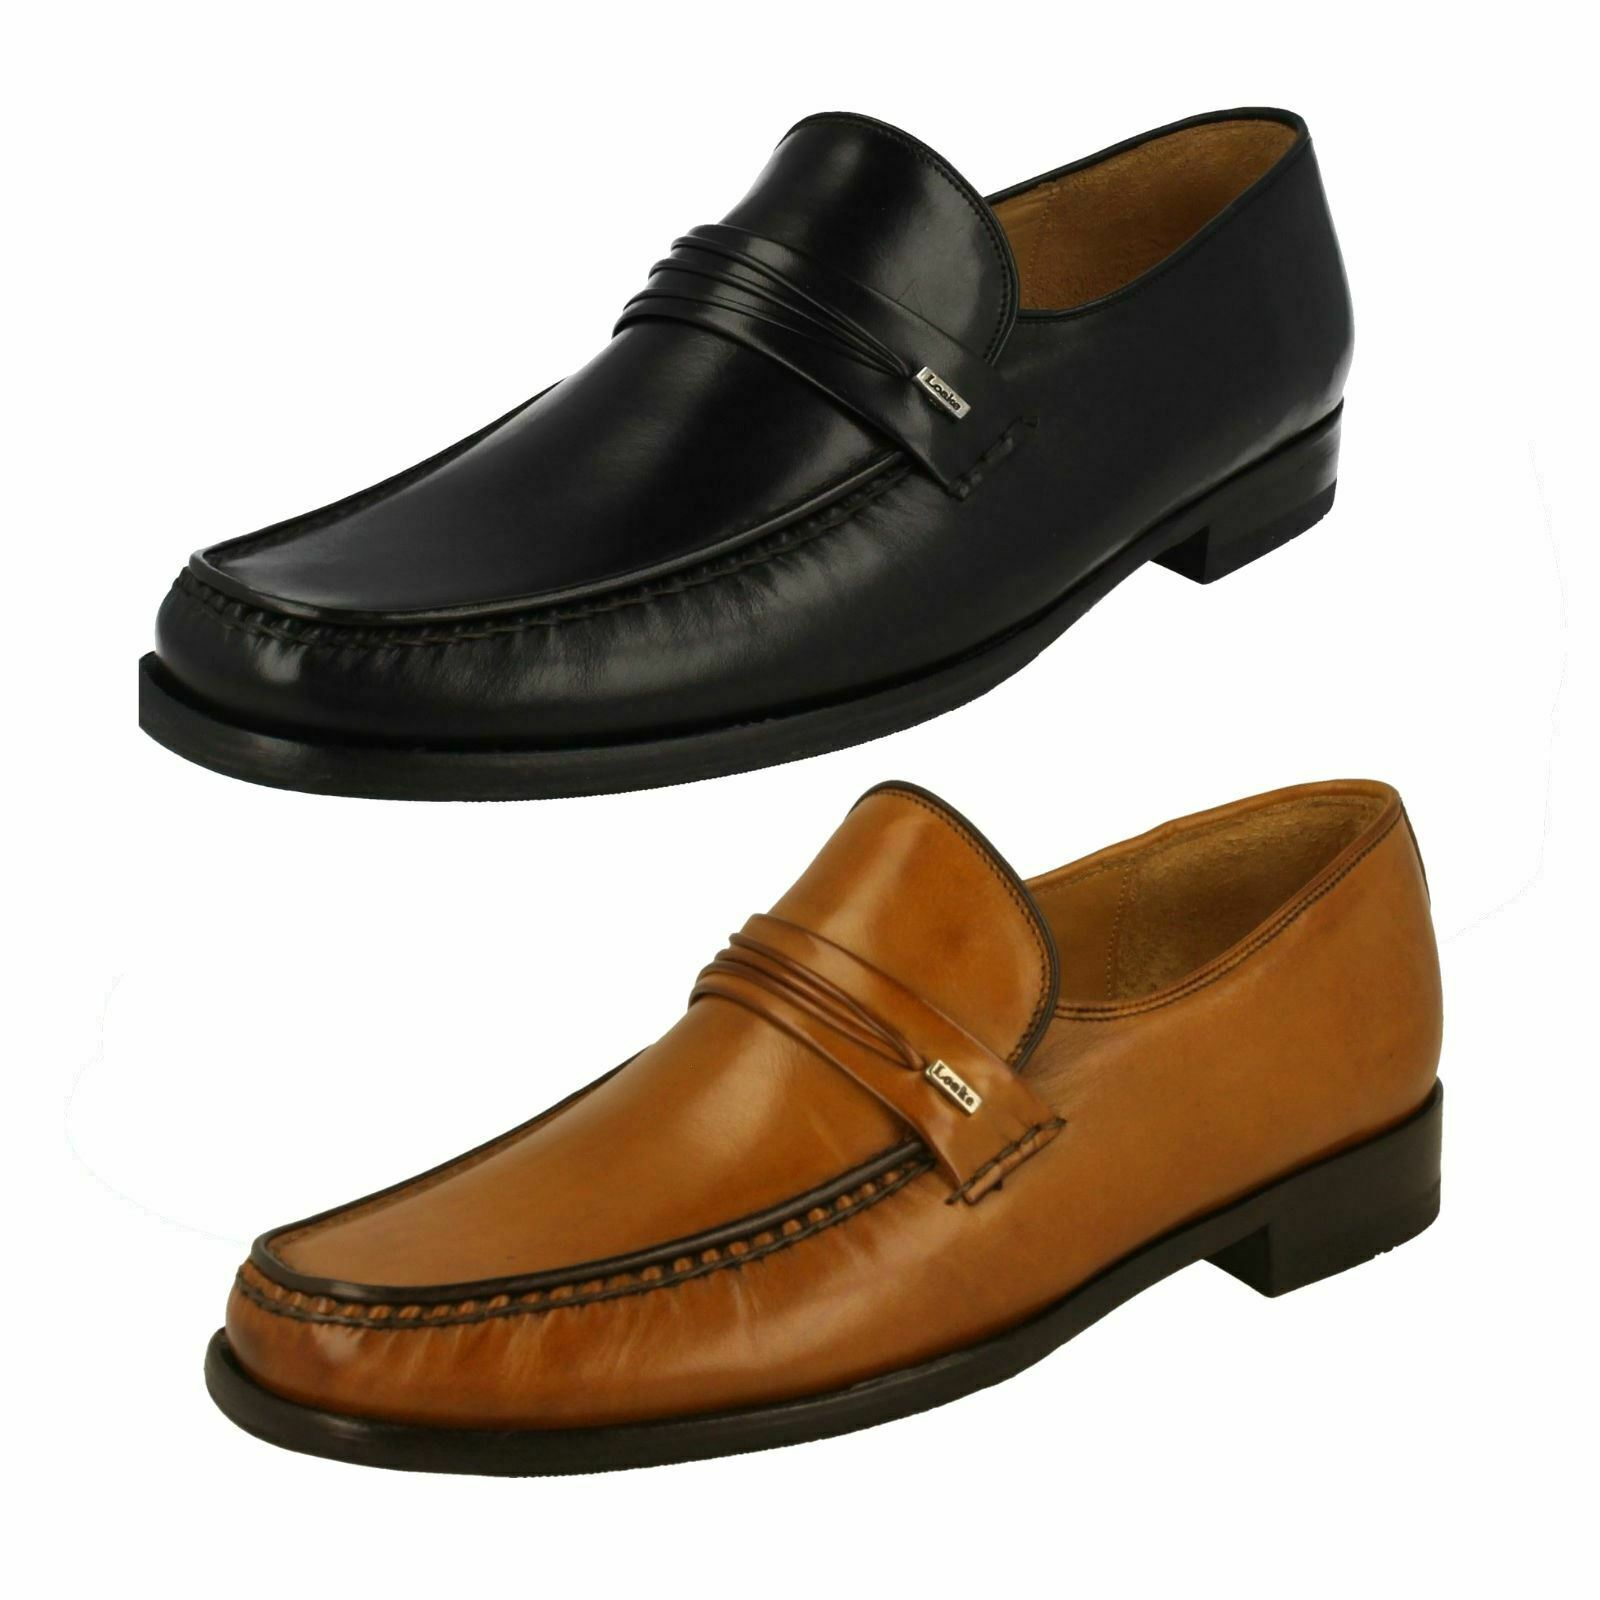 Loake Mens Leather Moccasin Slip On schuhe Palermo 2